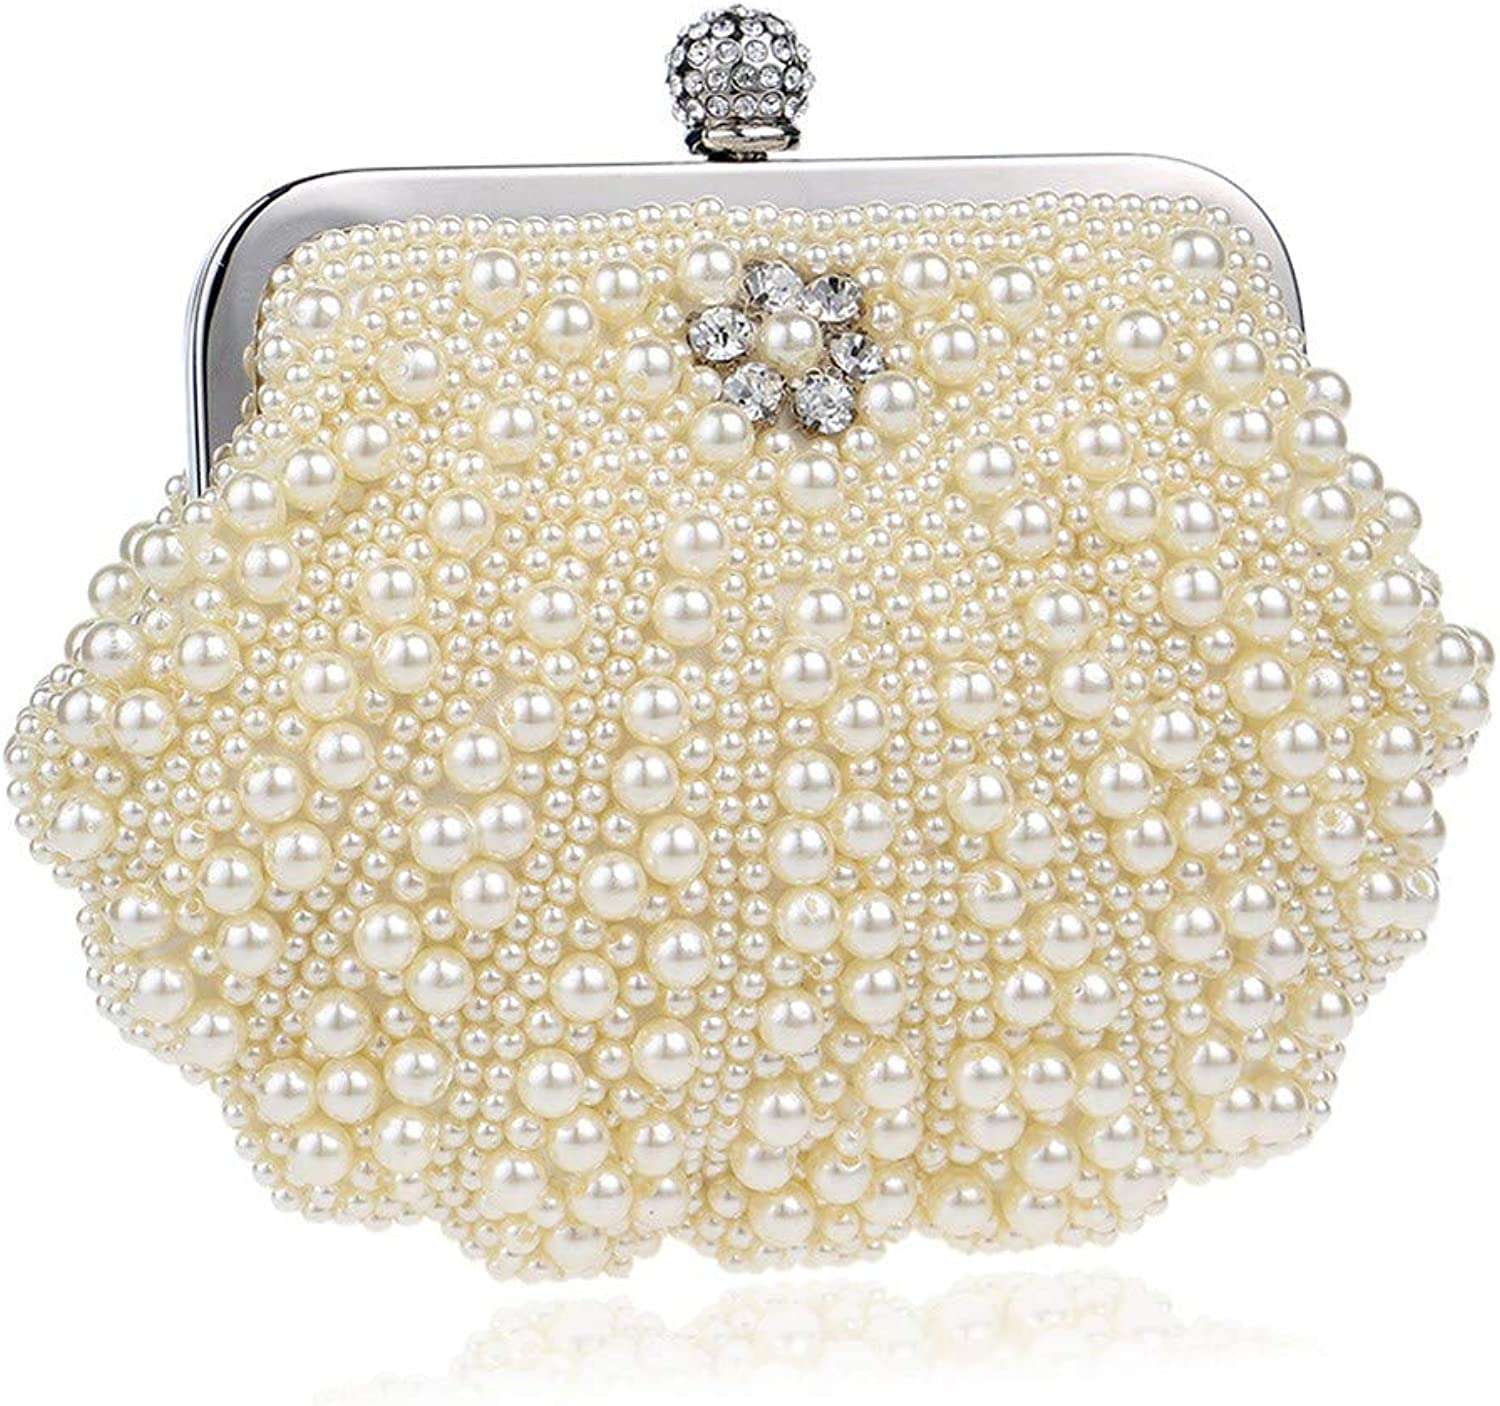 Wershiny Women's Clutch Bag, Evening Bag Clutch Purse for Women Beaded Evening Bag Fashion Pearl Party Bag Dress Evening Clutch